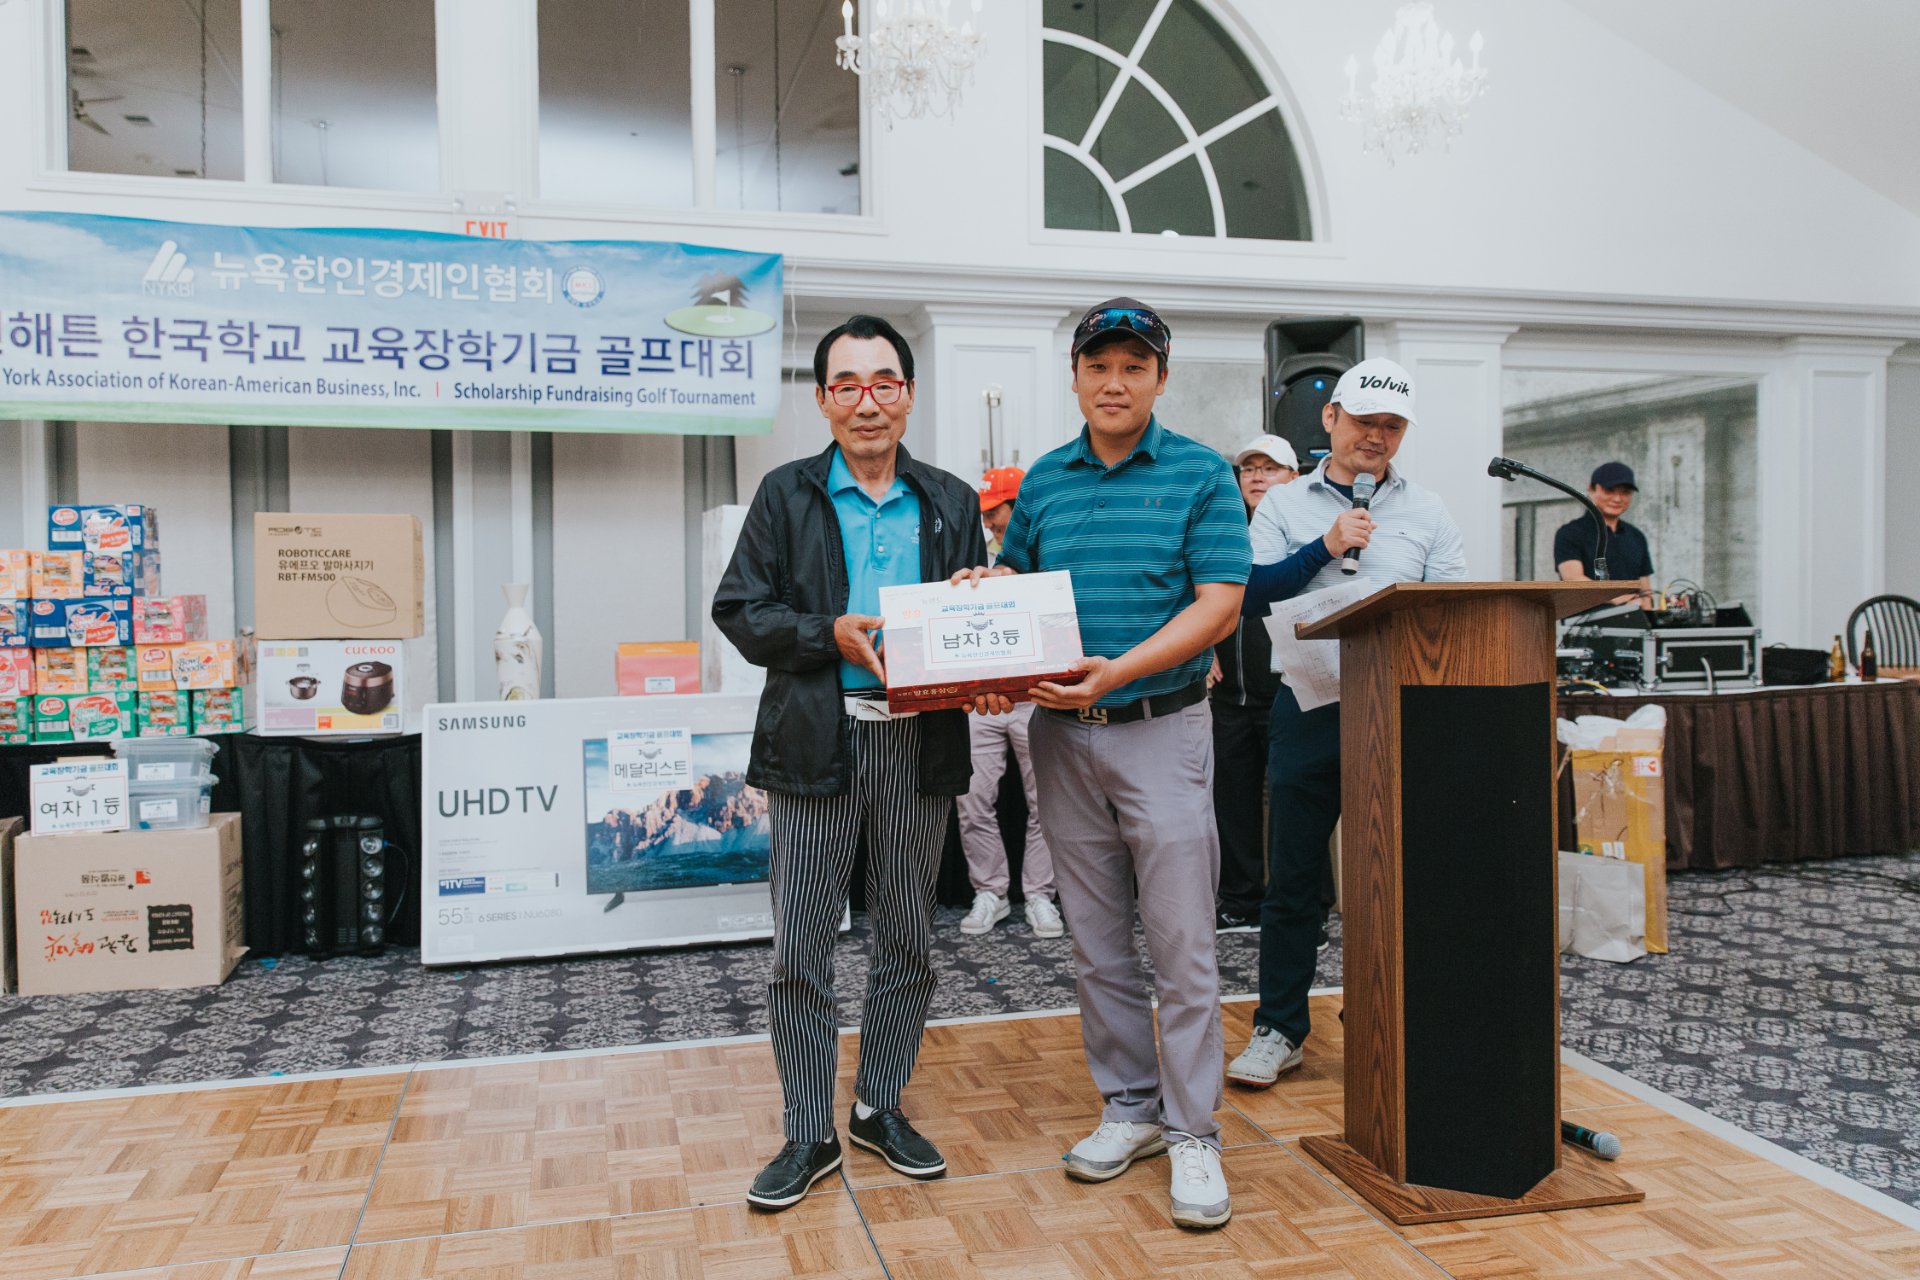 https://nykbi.com/new/wp-content/uploads/2019/07/190619-Scholarship-Fundraising-Golf-Tournament-049.jpg